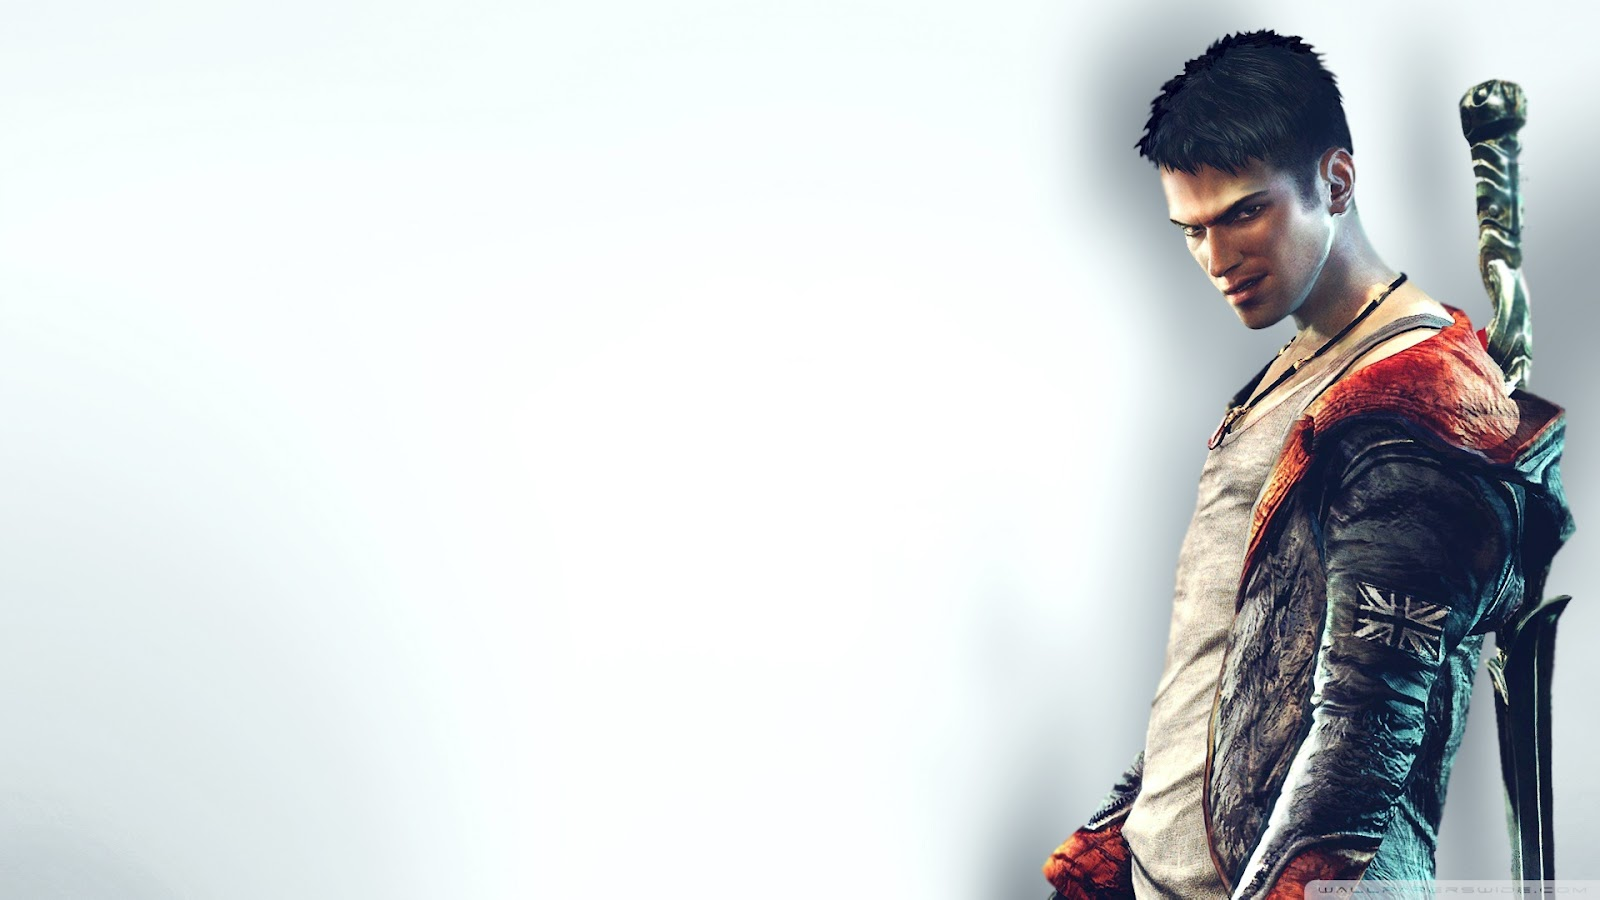 dmc devil may cry 2 wallpaper 1920x1080 Devil May Cry 5 Wallpapers in HD   1080p